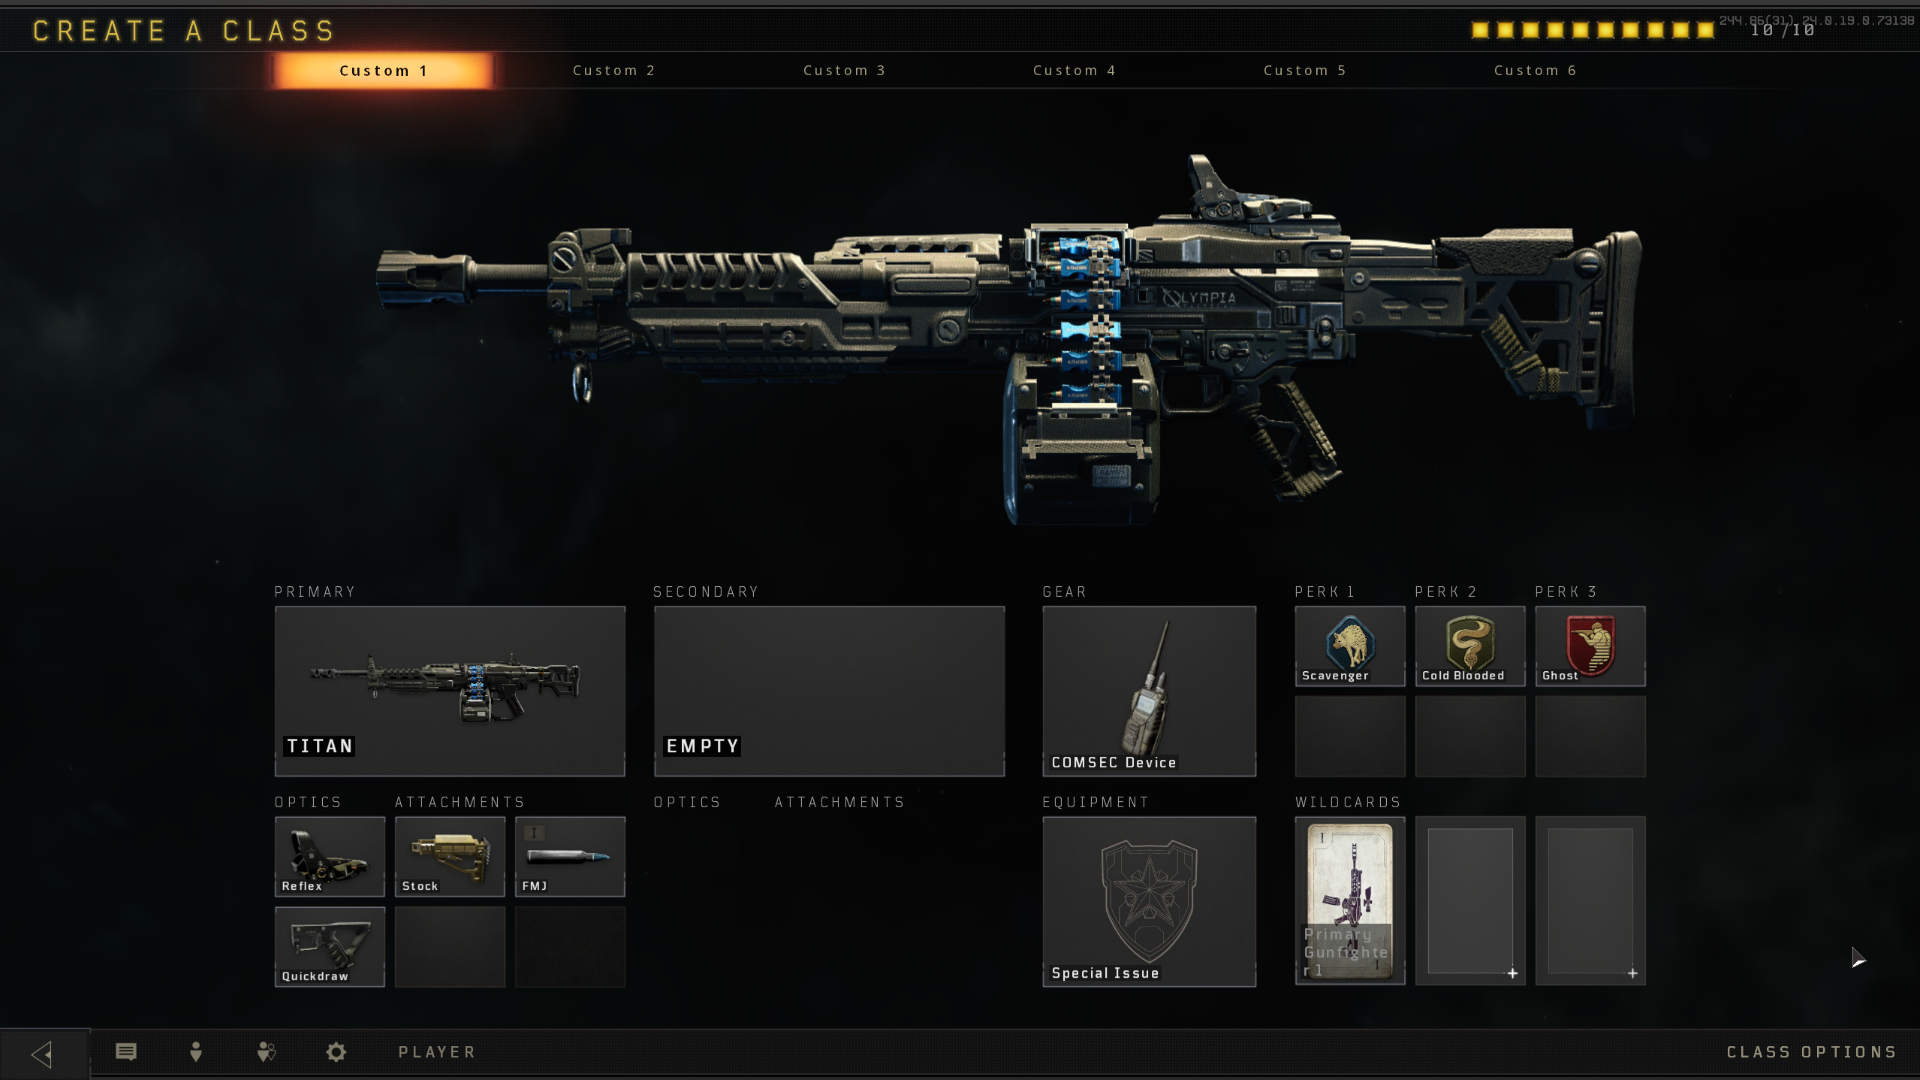 Best Black Ops 4 Classes 7 Builds To Help You Dominate In Multiplayer Pcgamesn